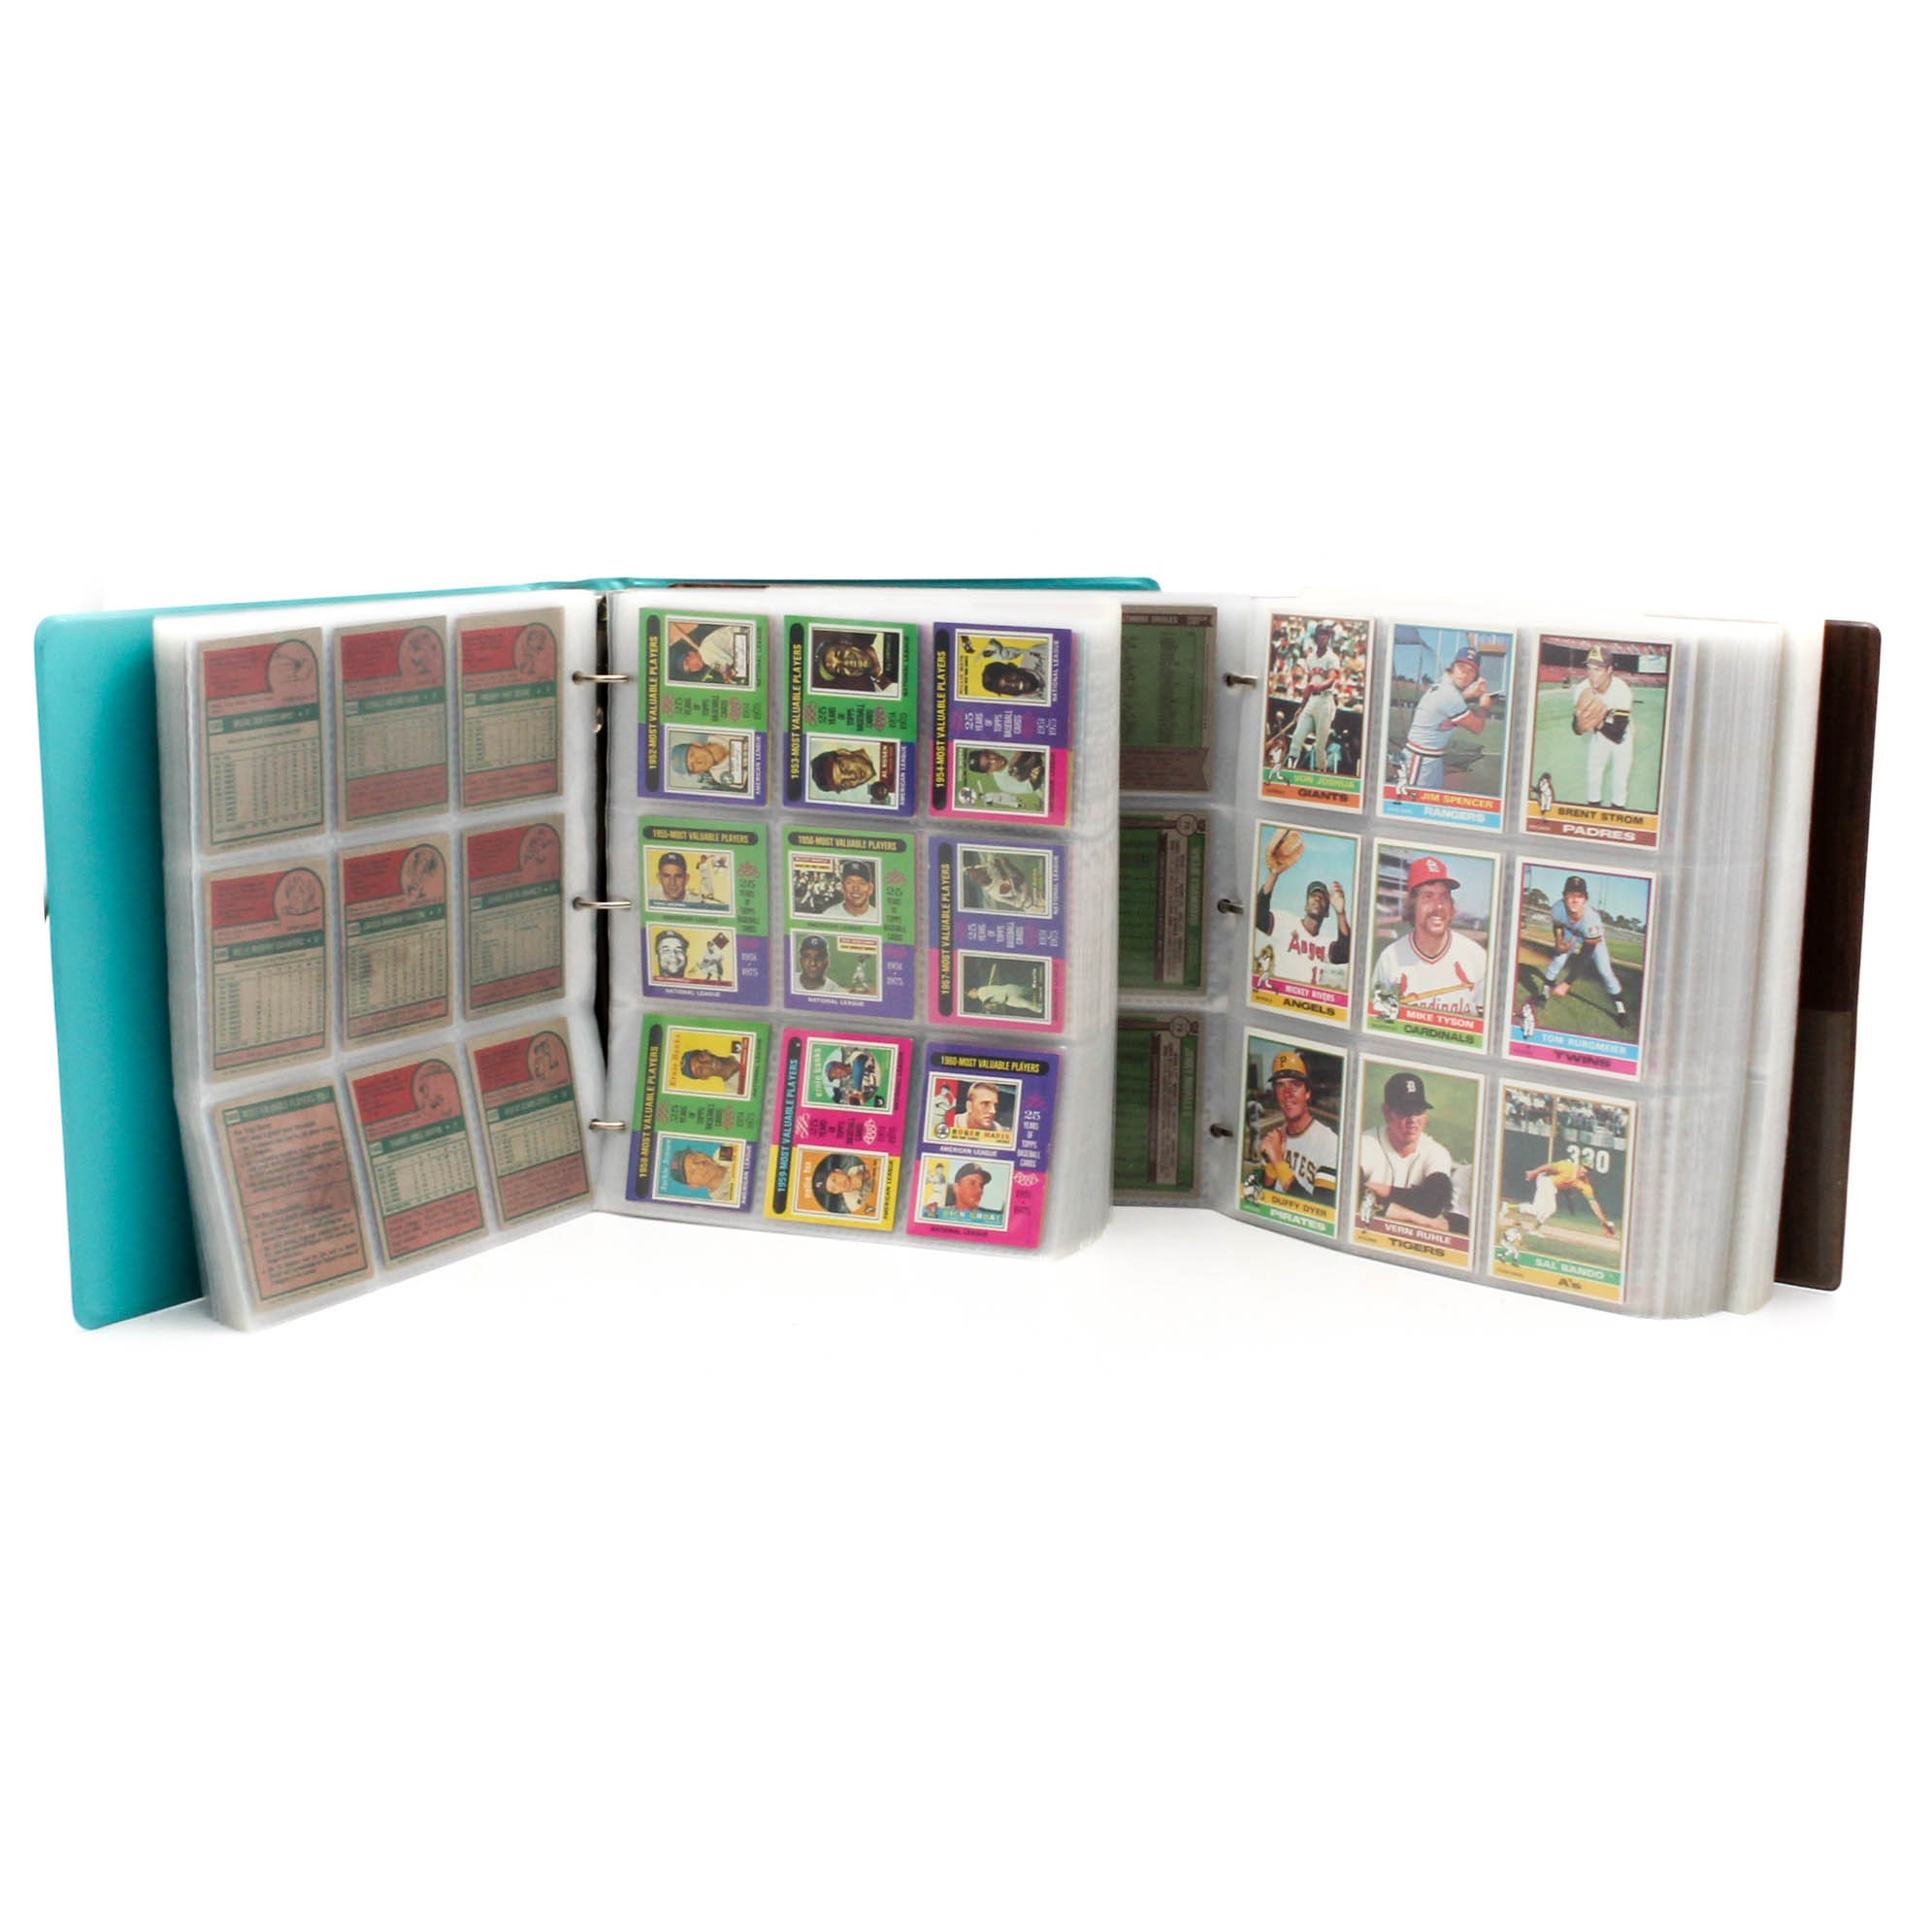 Near Complete 1975 and 1977 Topps Baseball Card Collections